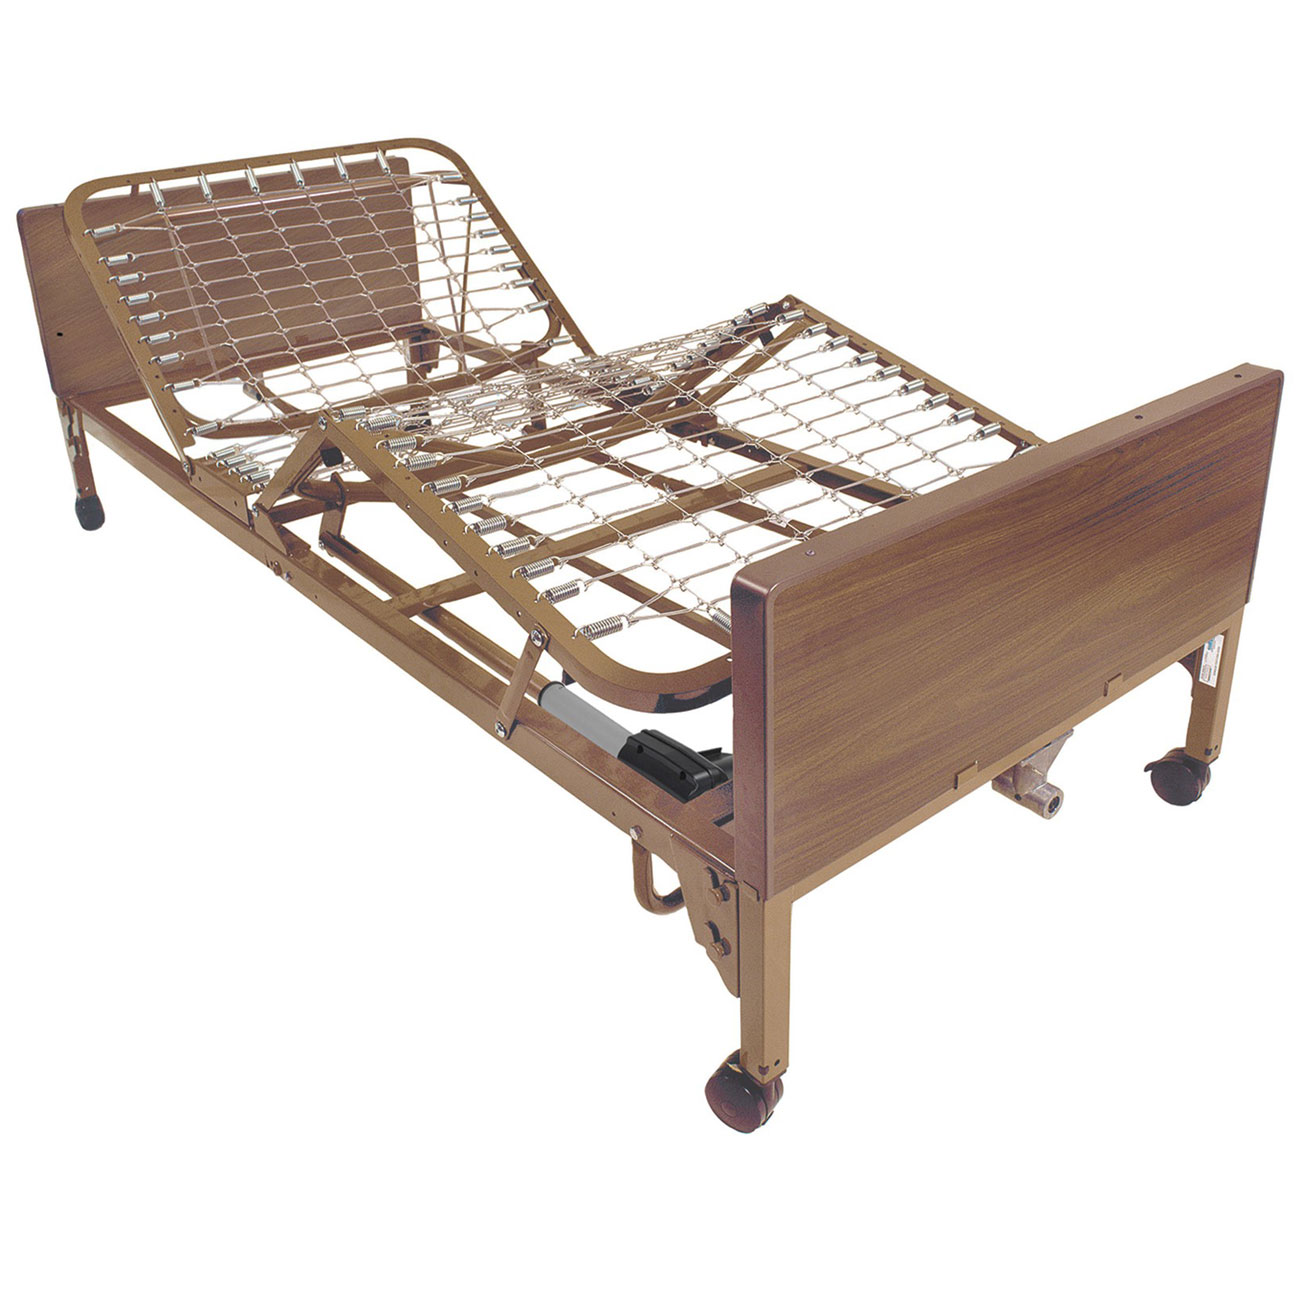 Full-Electric Twin Size Bed